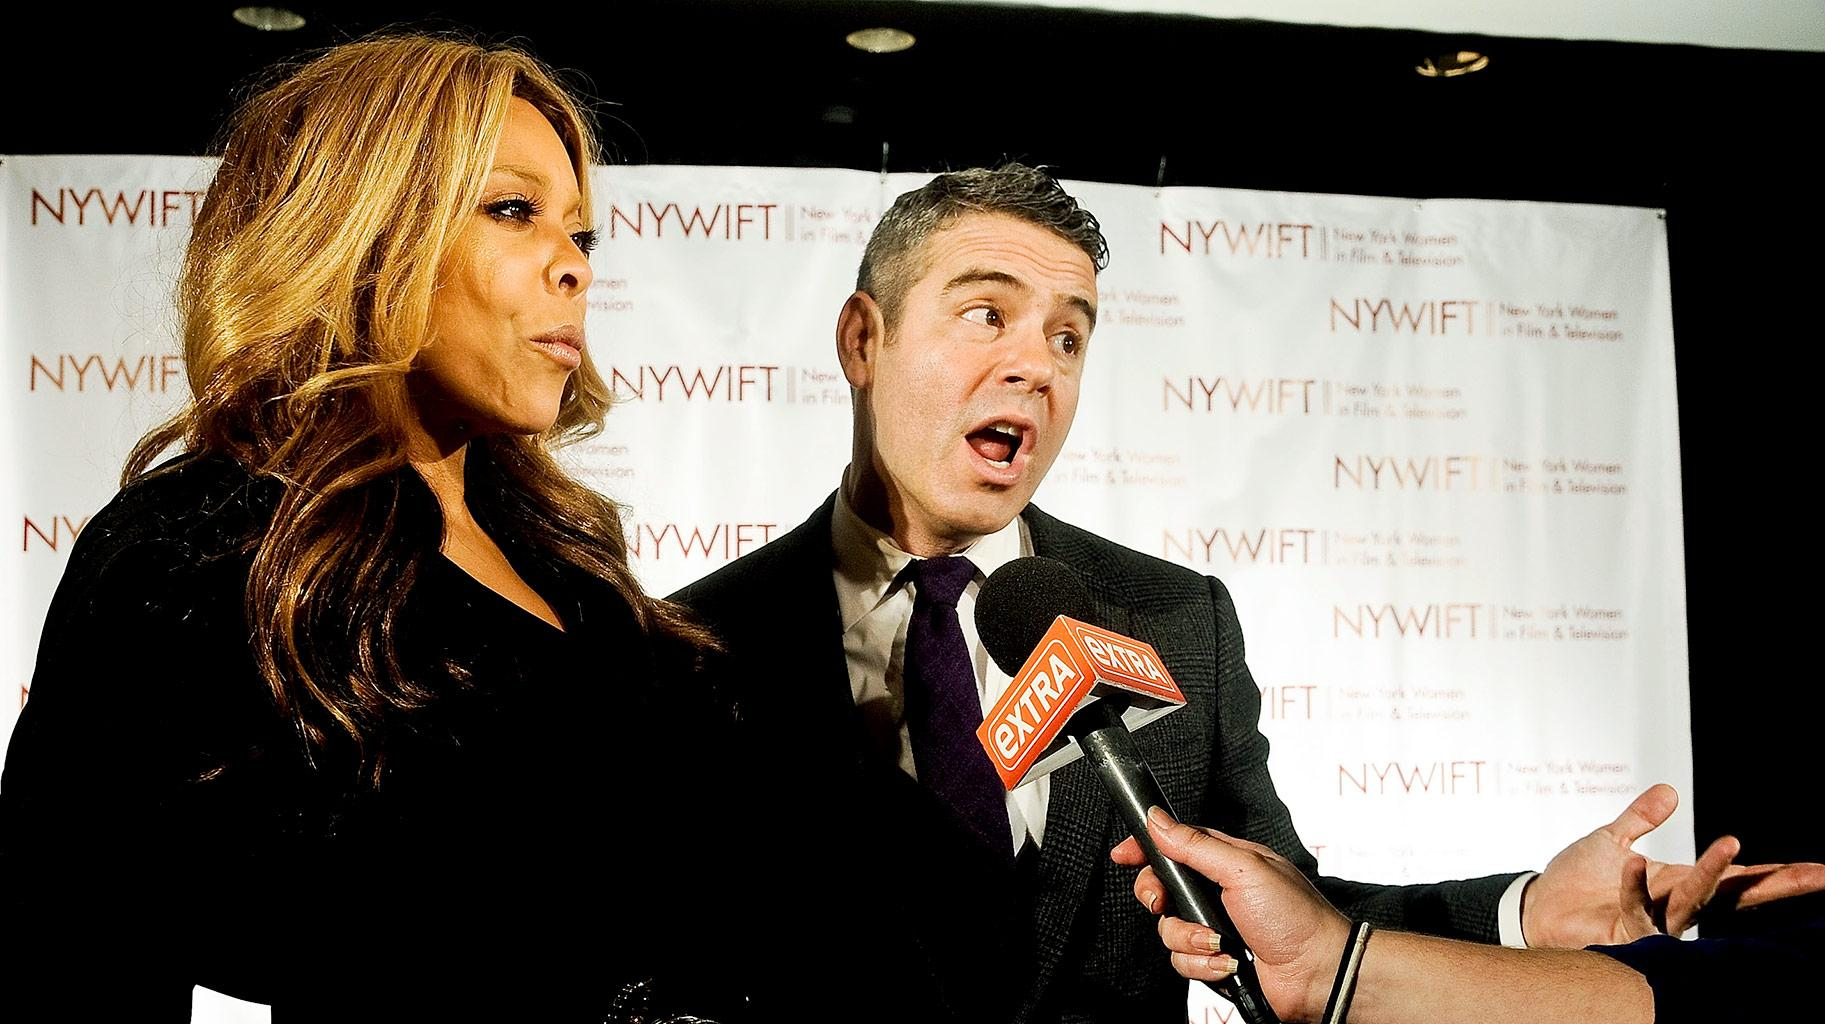 Andy Cohen Revealed What He Said In A Note To Wendy Williams After News Of Divorce Broke